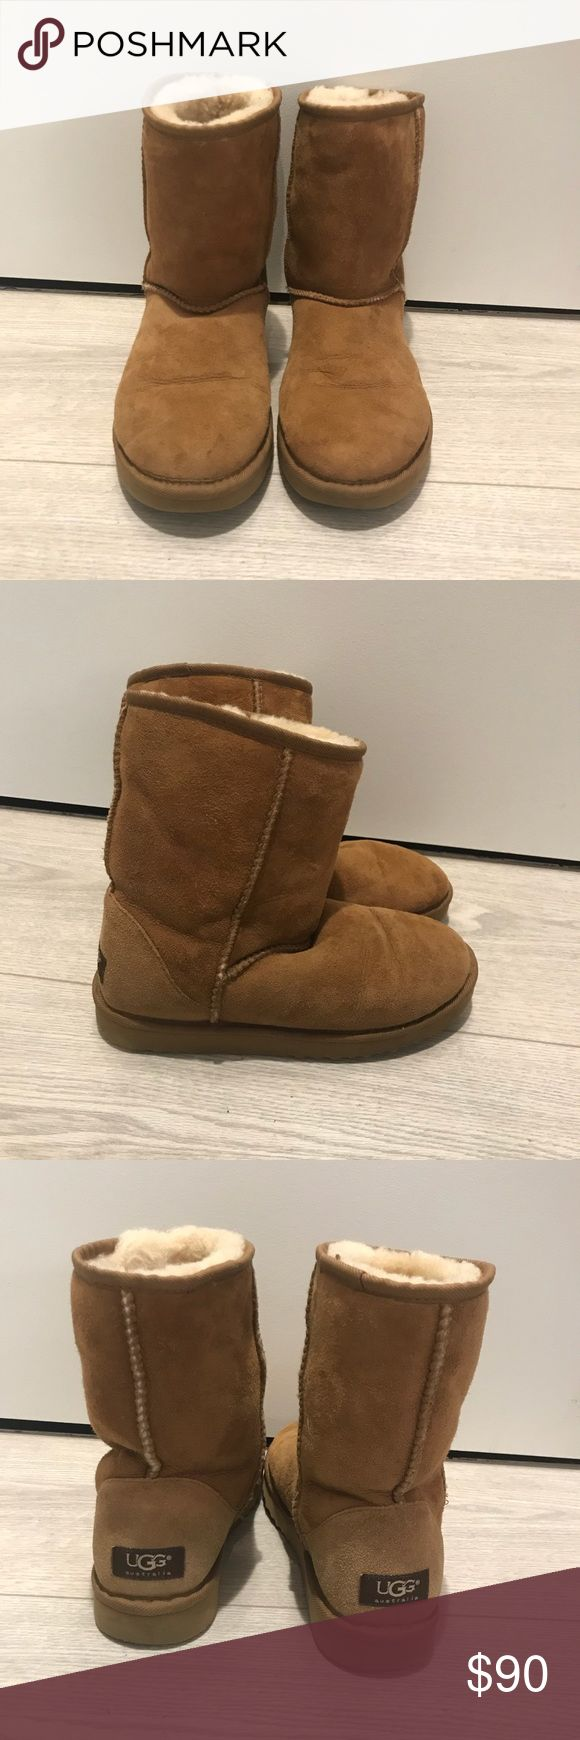 Classic Ugg Short Boots In great condition! Small water mark on front of right boot (pictured above). Inside lining still warm and fluffy UGG Shoes Ankle Boots & Booties